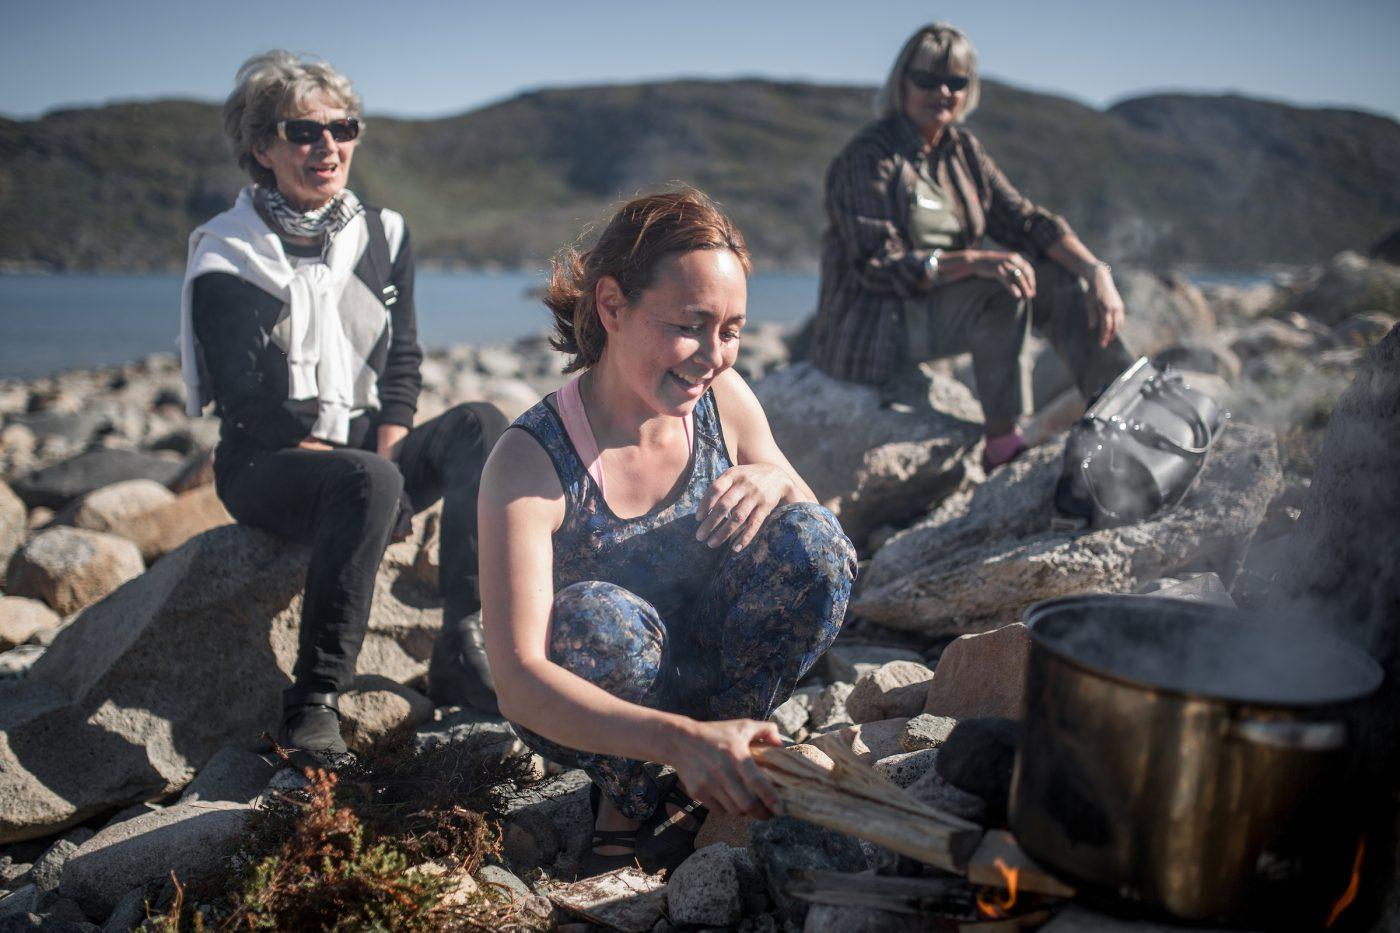 A young woman cooking on open fire in Narsaq in South Greenland. Photo by Mads Pihl